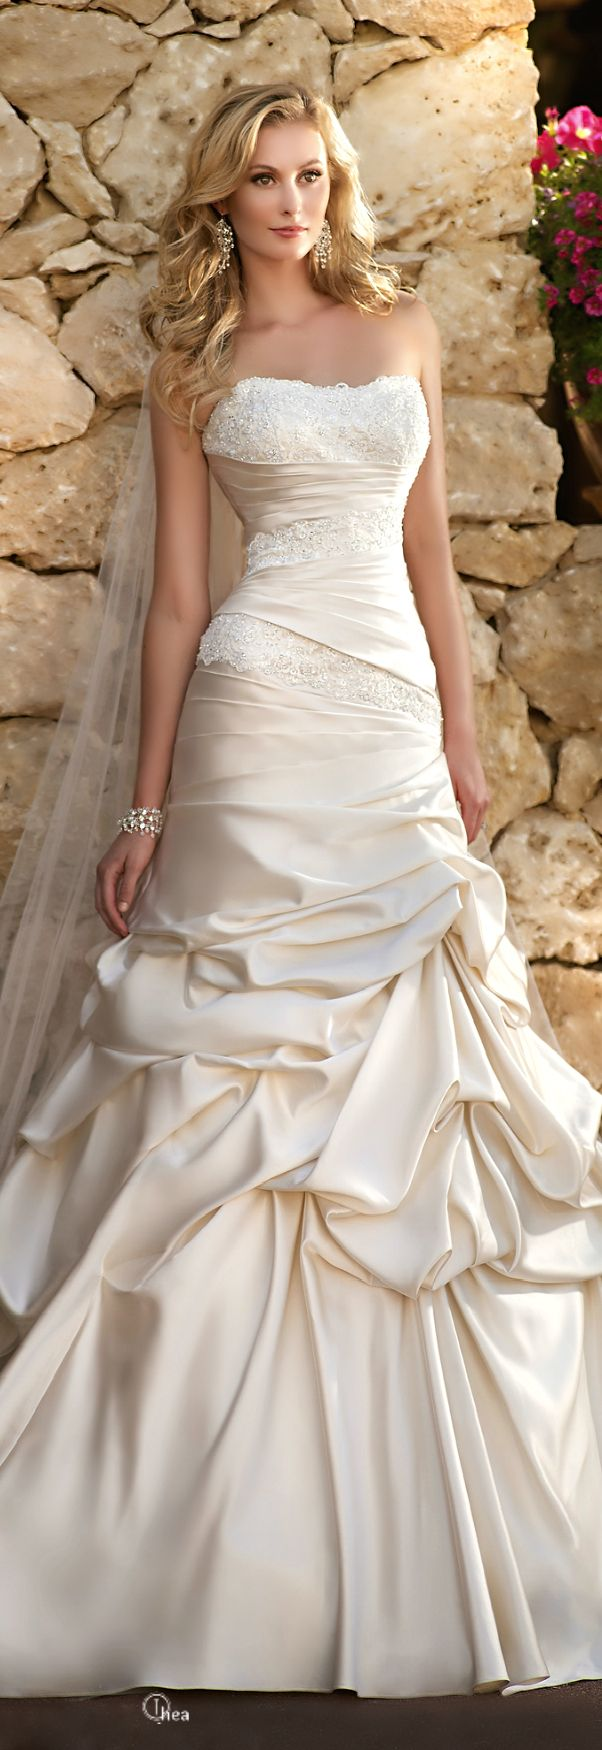 Wedding Dress ● Stella York I love the bodice, but the skirt just doesn't work for me!!